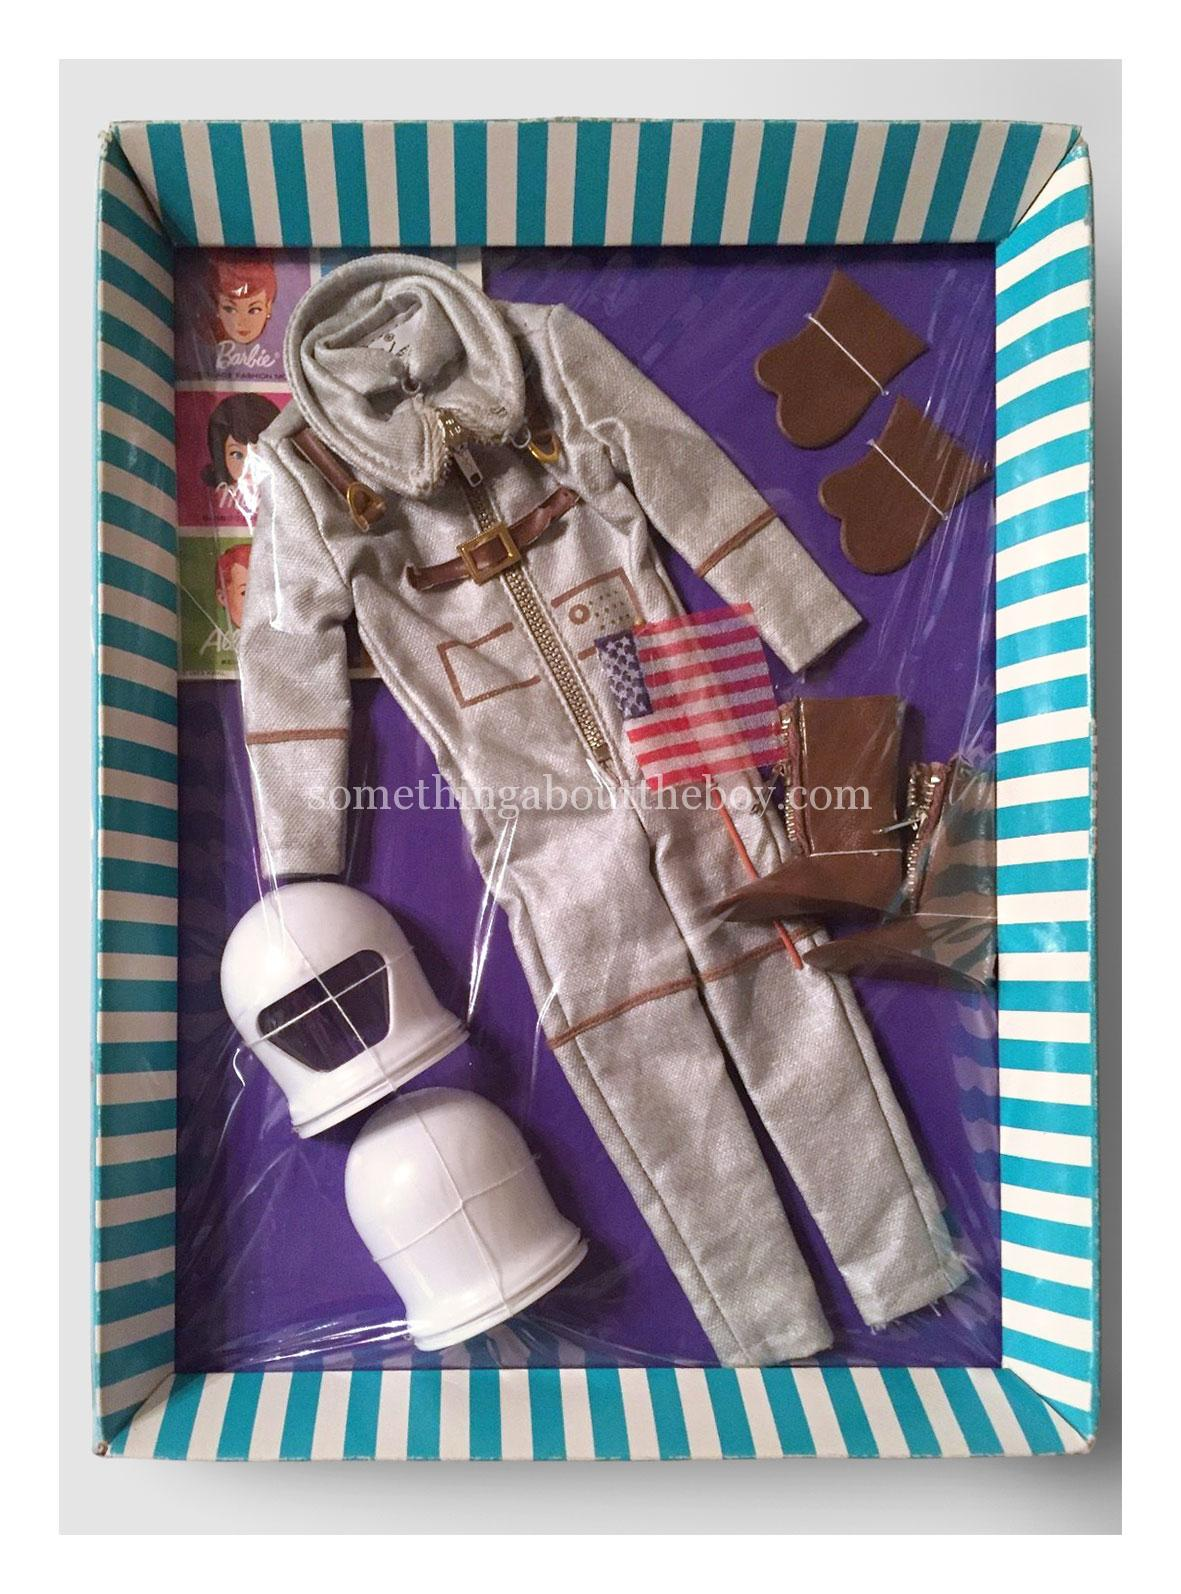 1965 #1415 Mr. Astronaut in original packaging